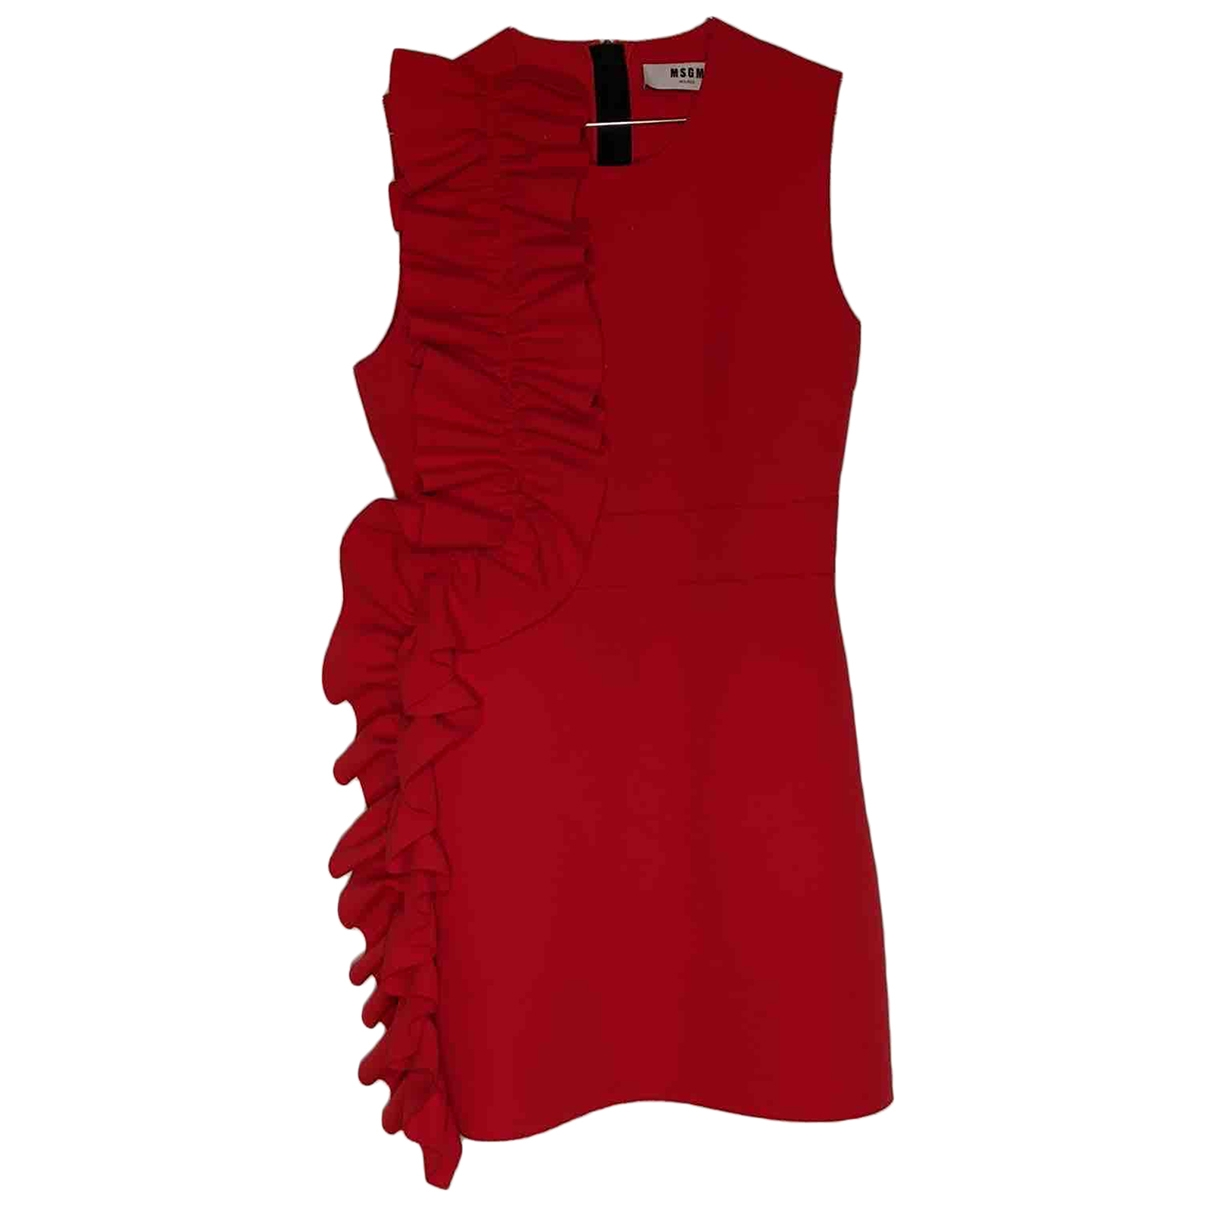 Msgm \N Kleid in  Rot Polyester